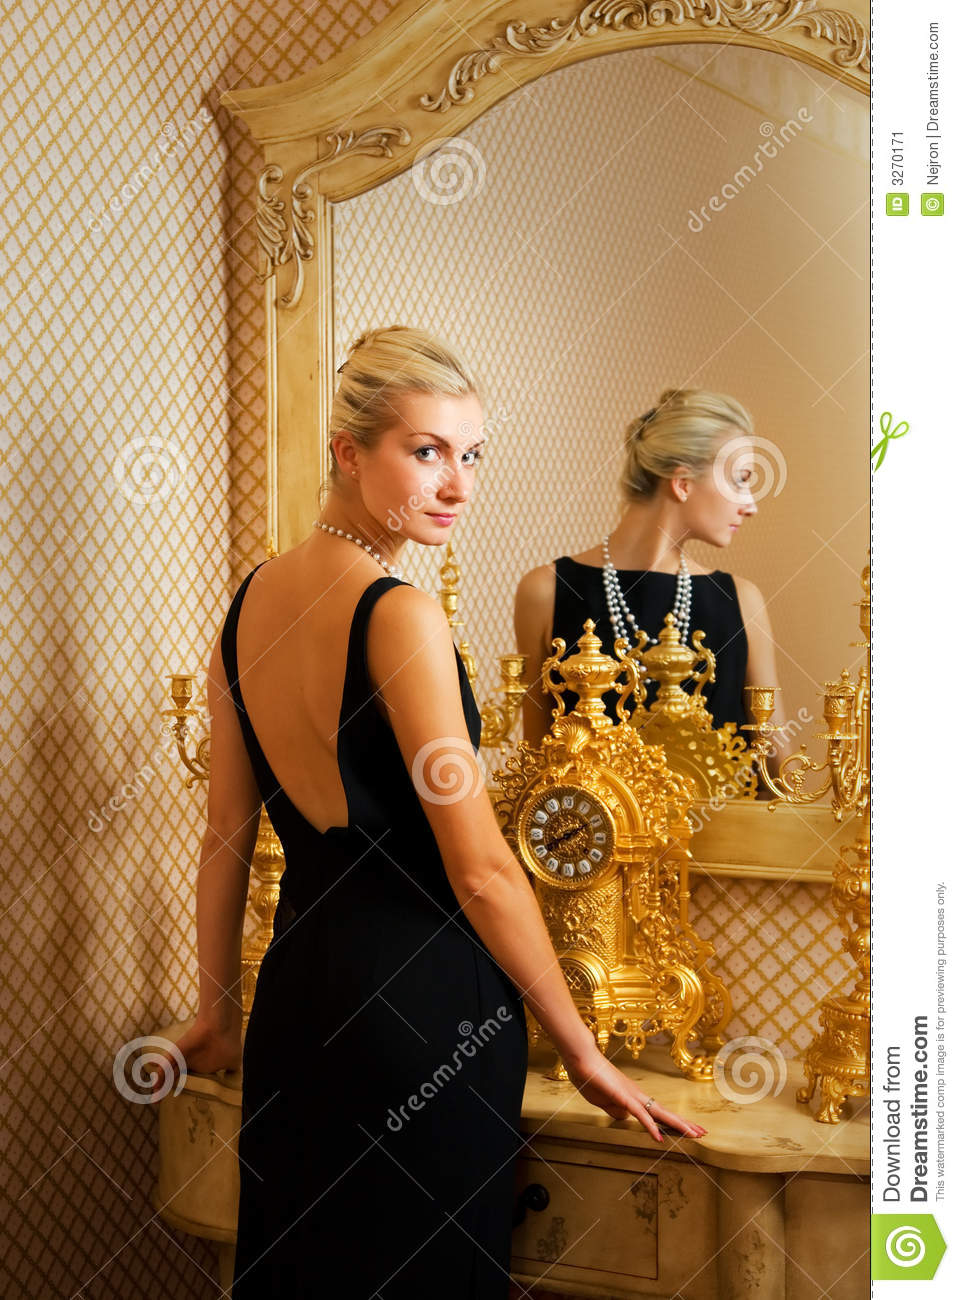 Chairs For Bedroom Girl Near Luxury Mirror Stock Image - Image: 3270171